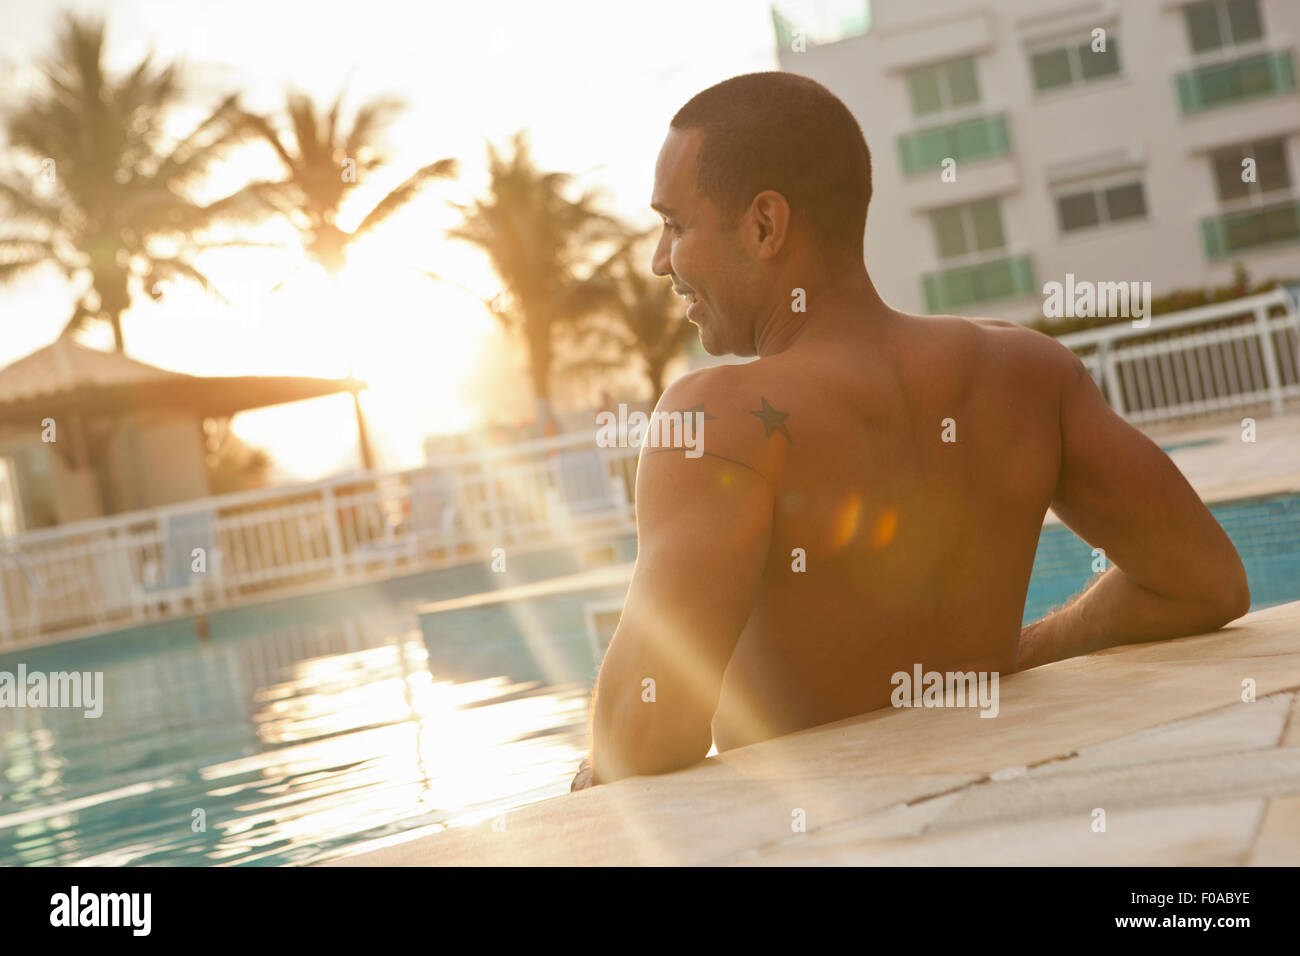 Rear view of mid adult man standing in sunlit hotel swimming pool, Rio De Janeiro, Brazil - Stock Image